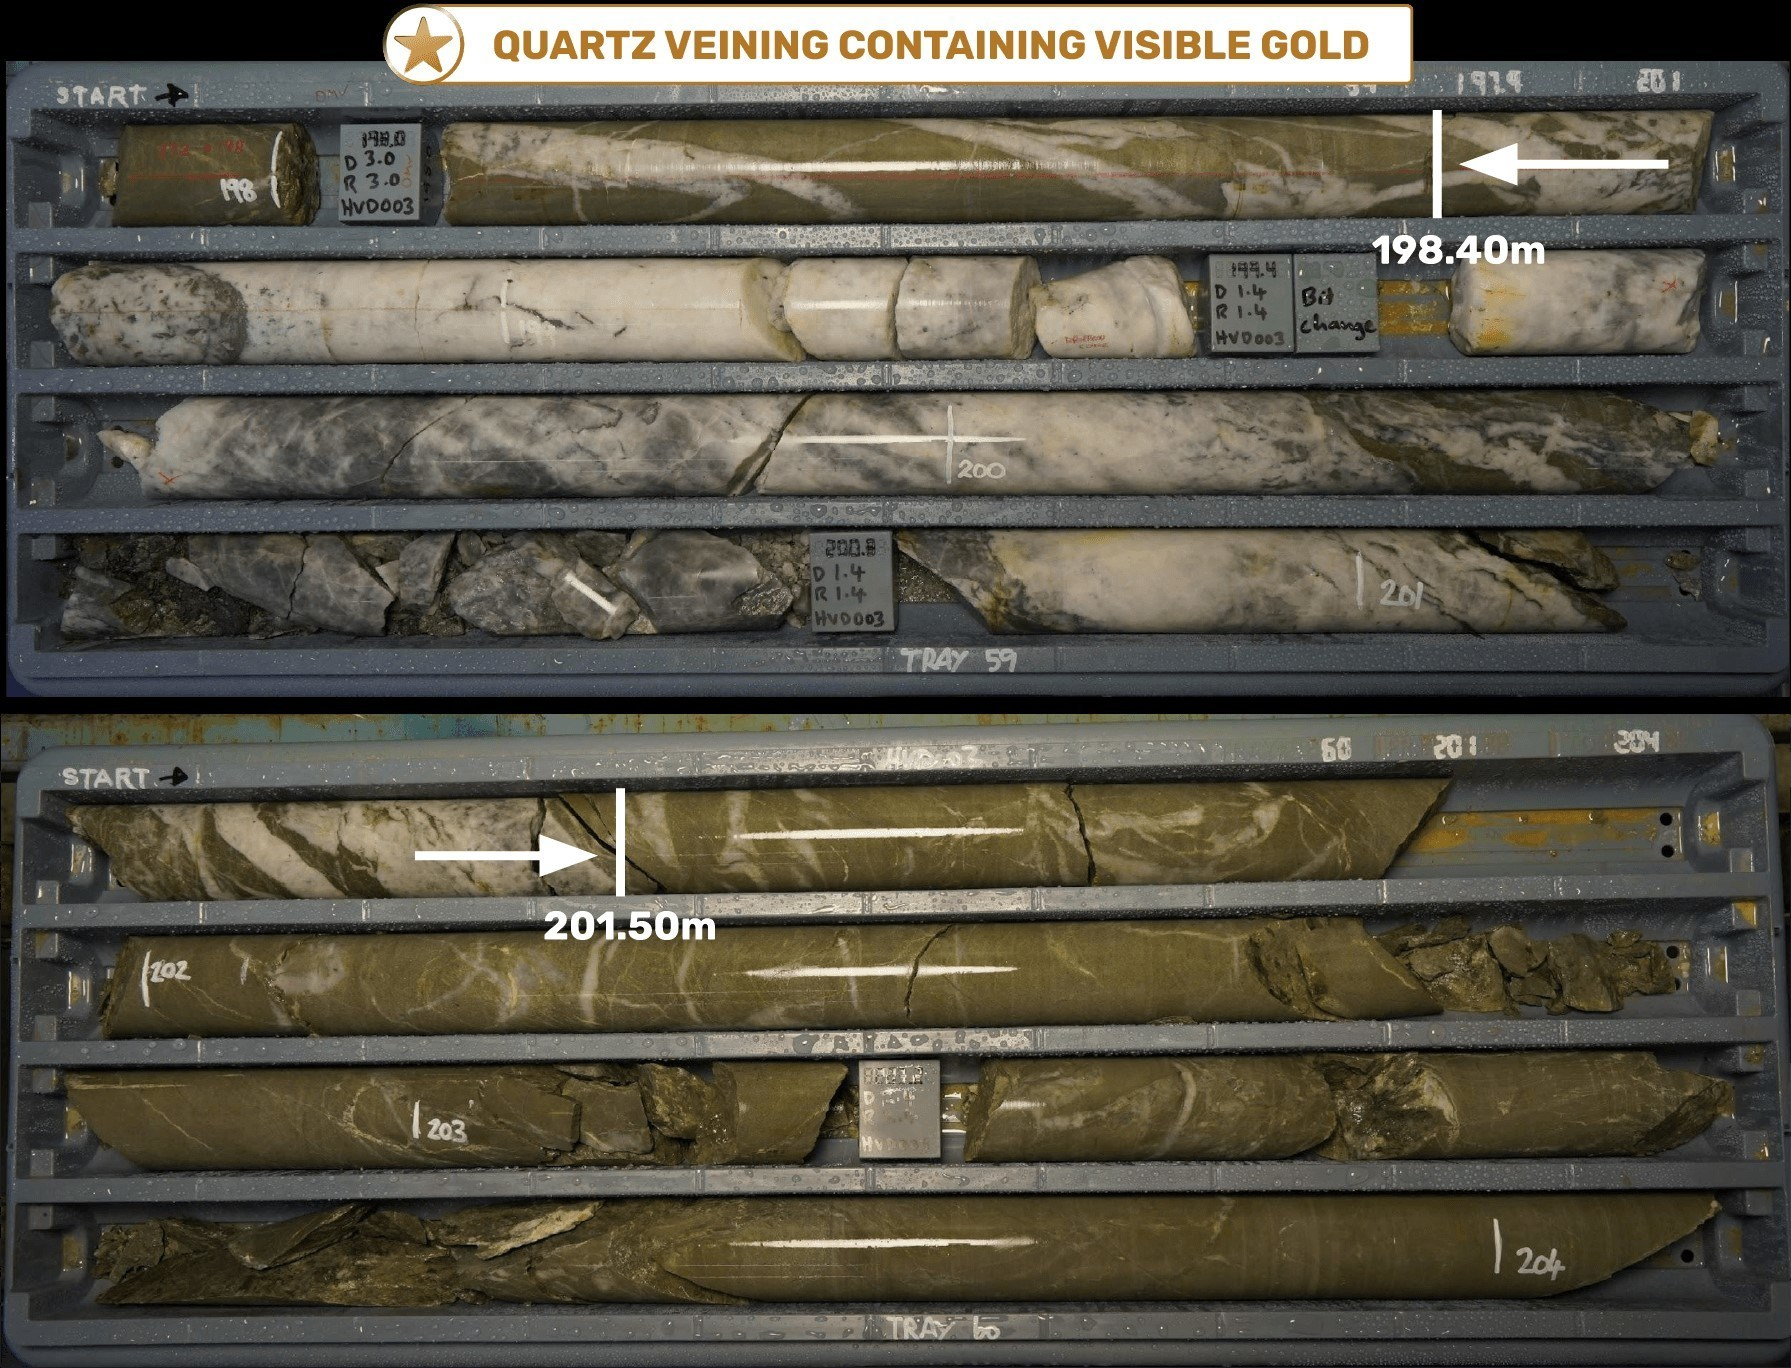 Figure 5 - HVD003 Quartz vein containing visible gold (198.40 – 201.50m down-hole), within hydrothermally altered and veined sedimentary unit (CNW Group/E79 Resources Corp.)